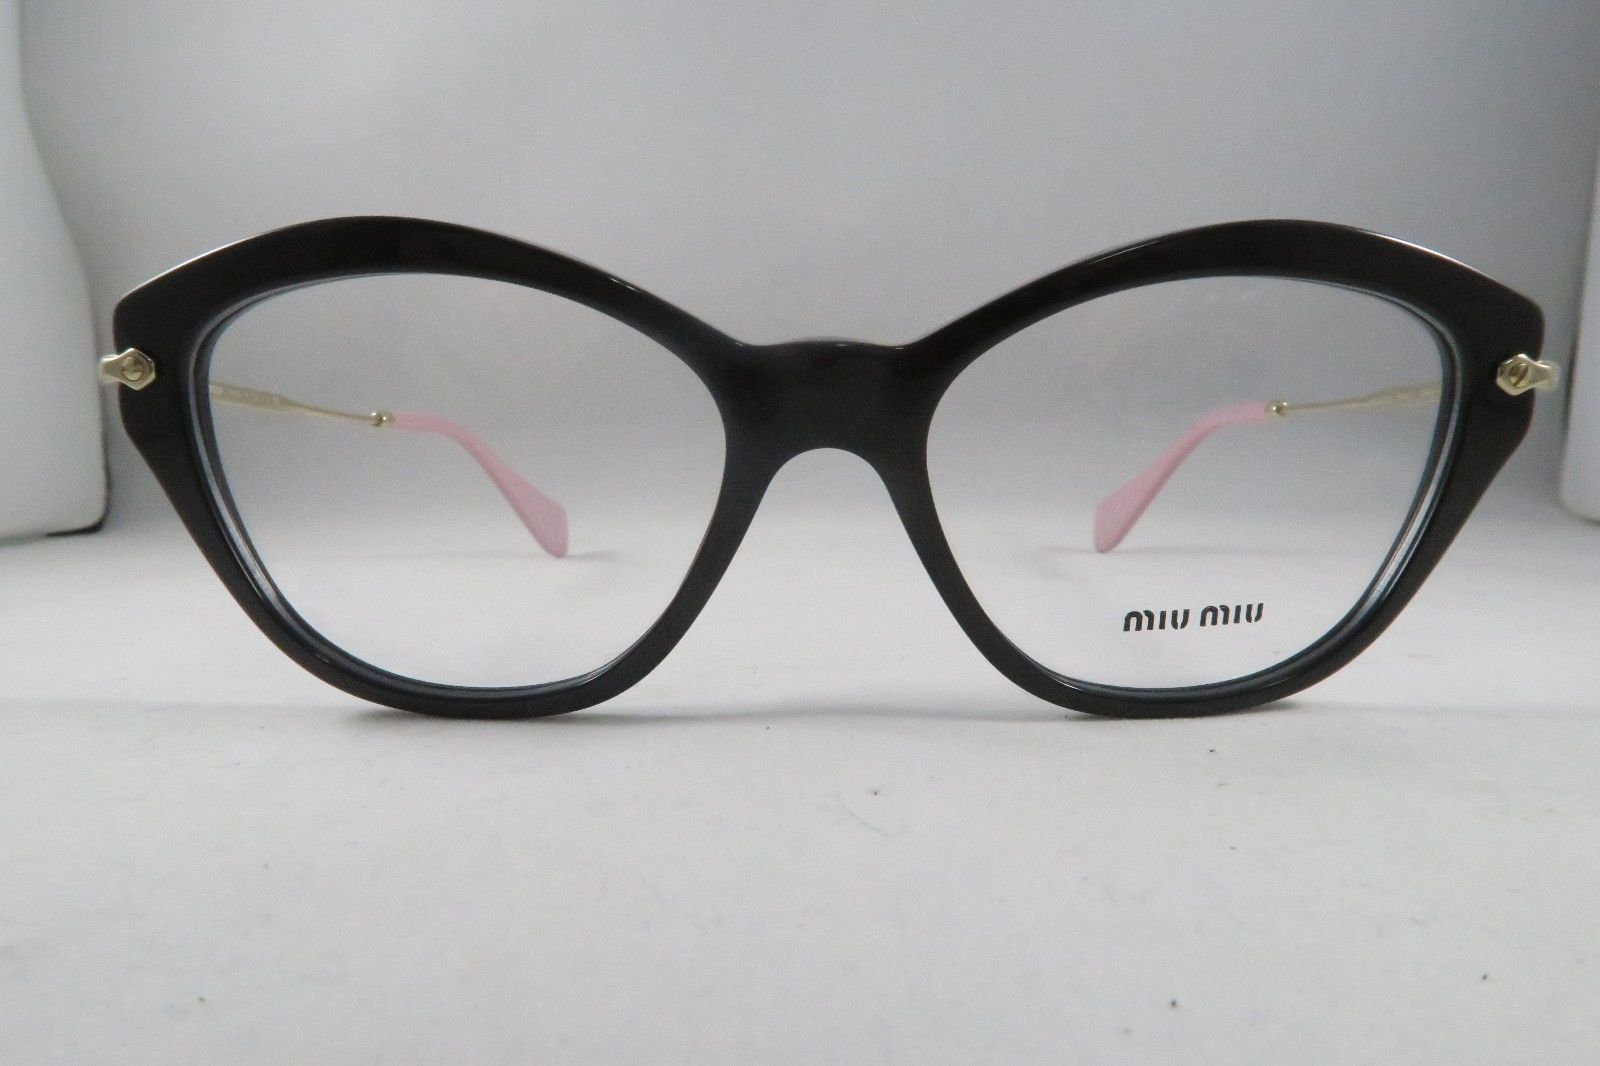 0def373c4c33 S l1600. S l1600. Previous. Miu Miu VMU 02O DHO-1O1 Brown   Gold   Pink New  Authentic Eyeglasses 54mm